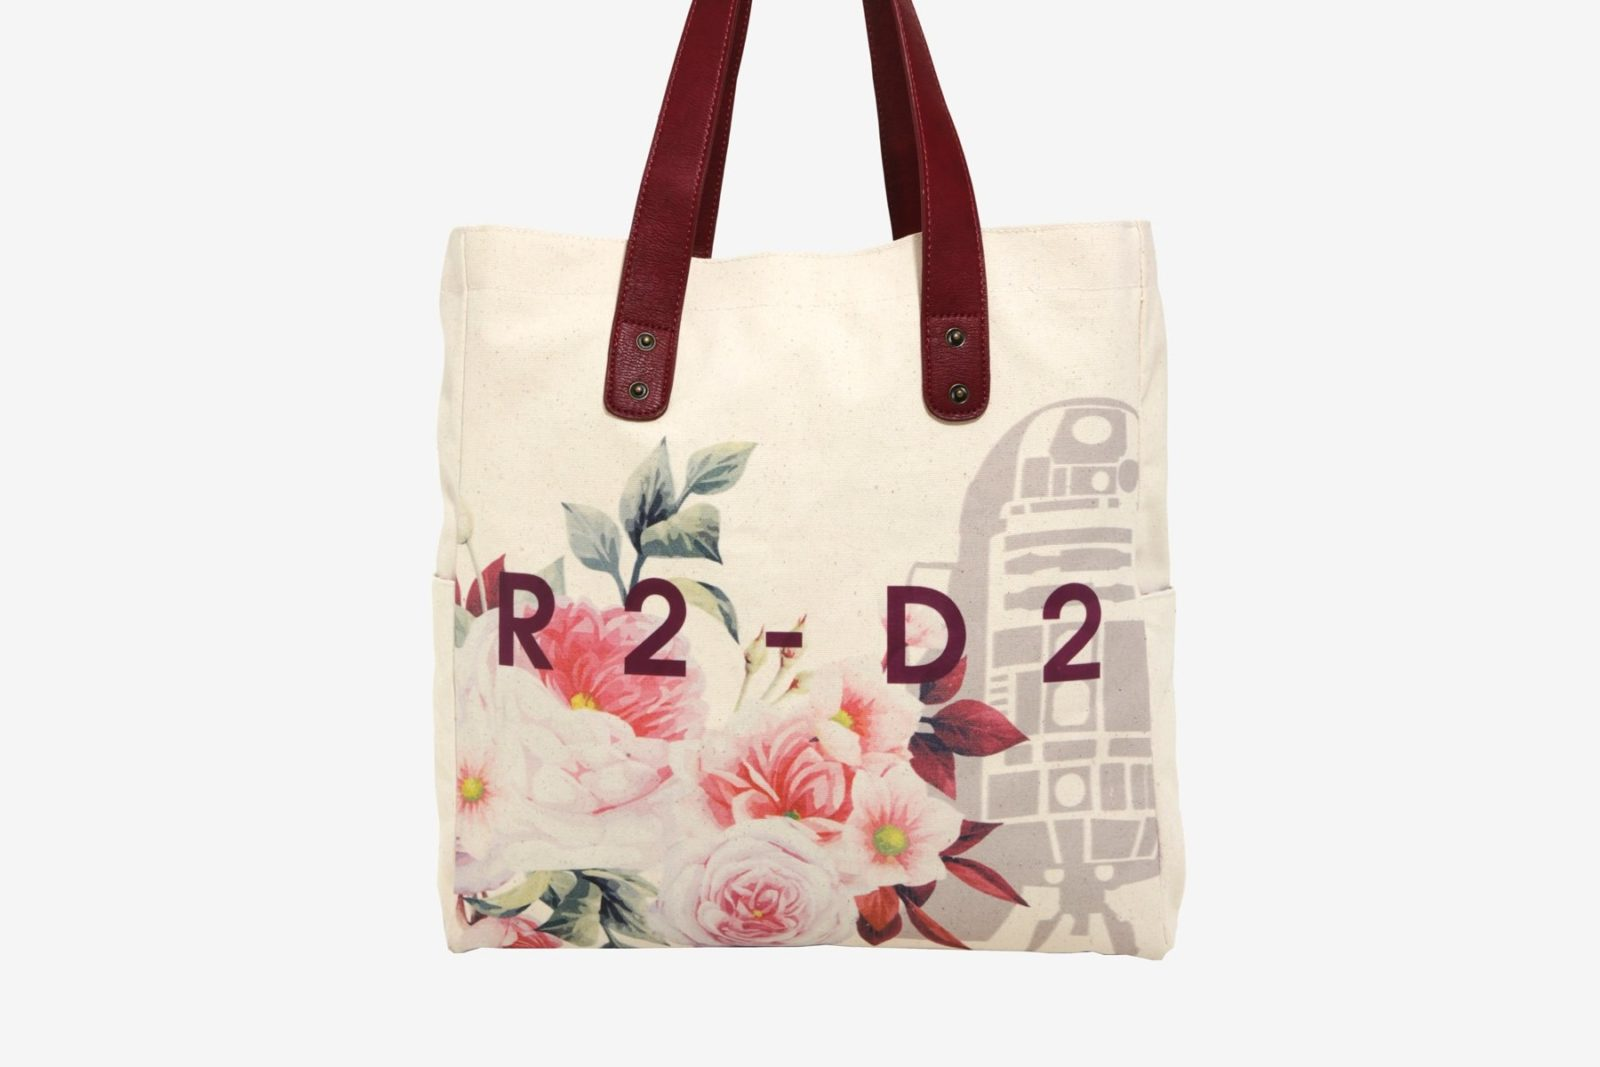 Loungefly R2-D2 Floral Tote Bag at Box Lunch